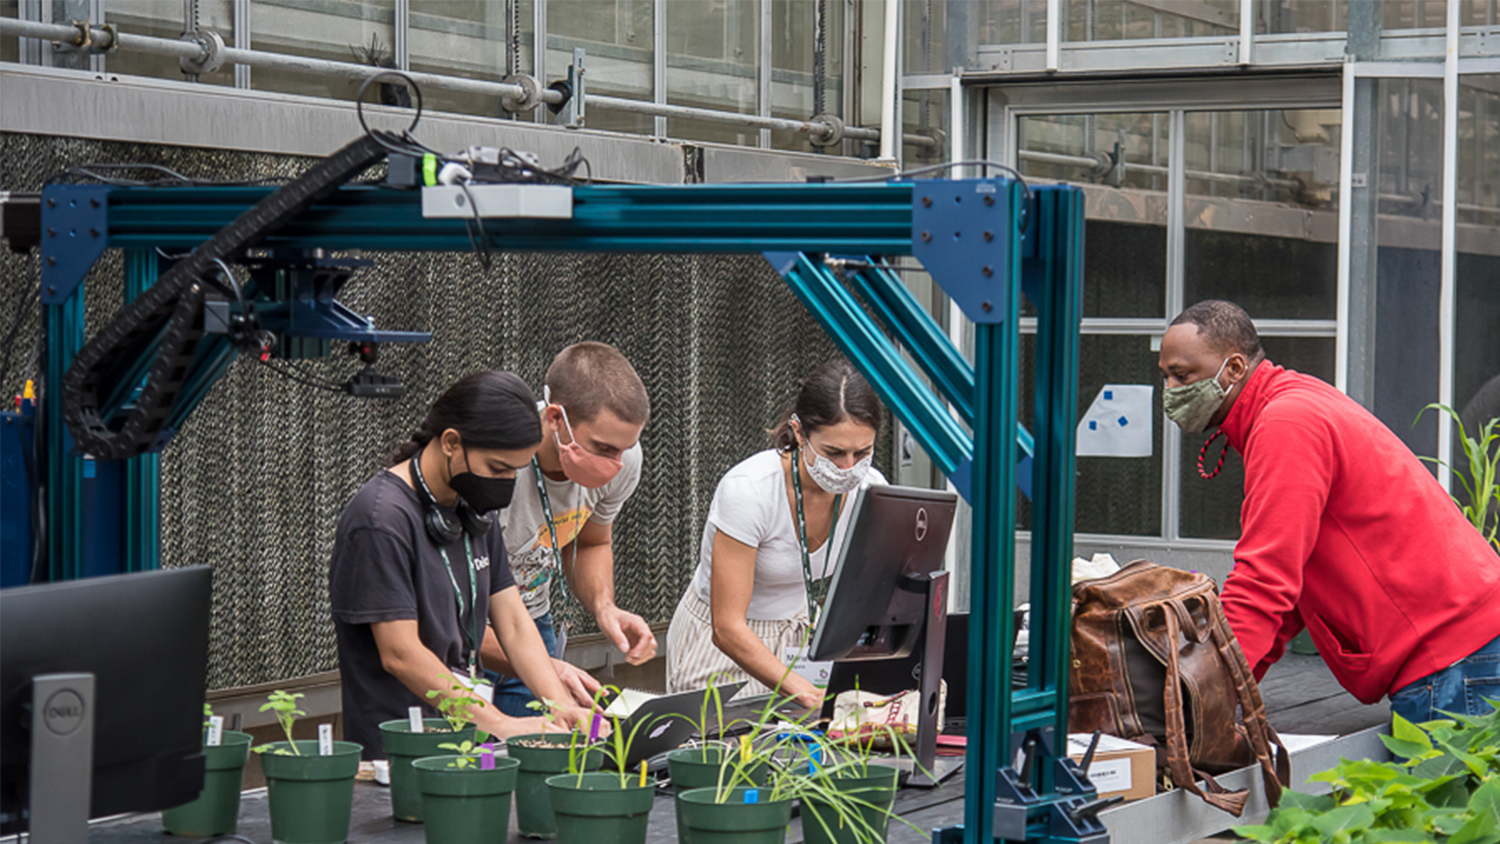 Students work on computers inside a plant breeding greenhouse